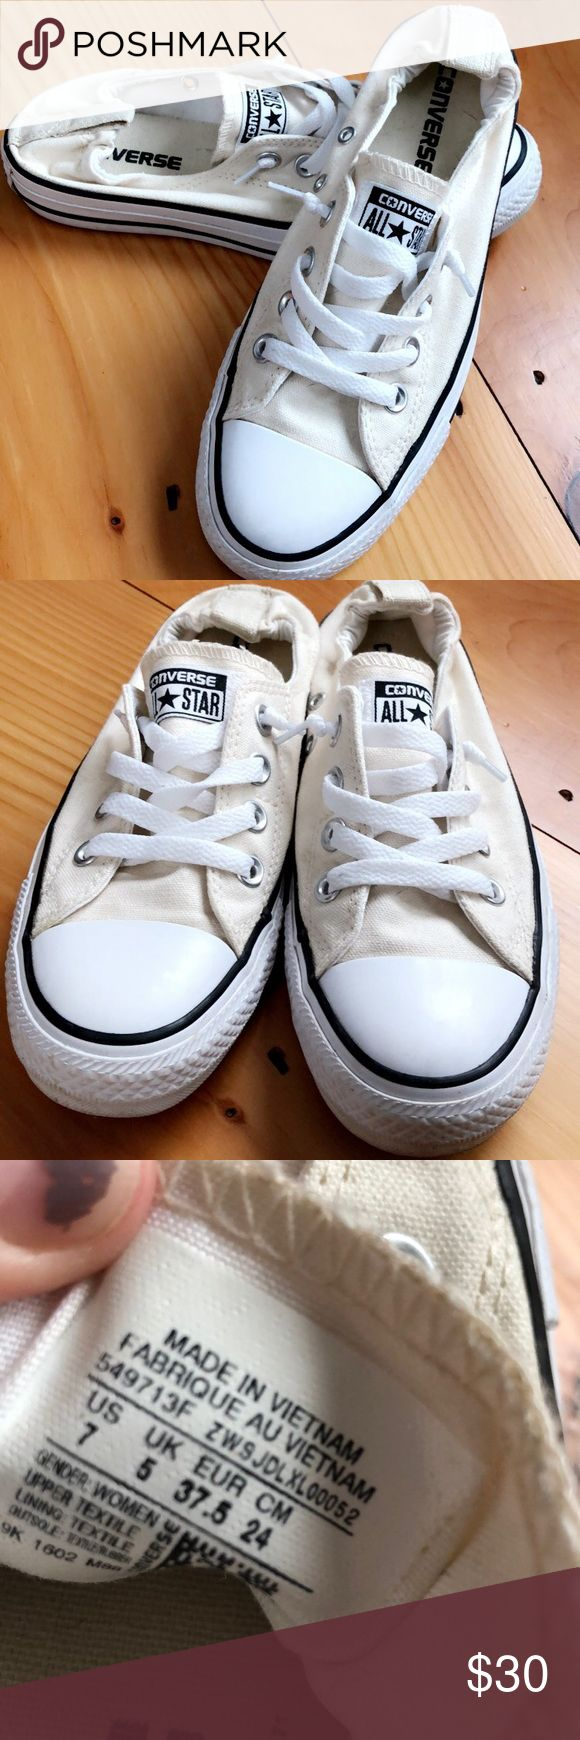 Converse slip ons Off white Converse slip ons. Size 7. Great condition! Worn twice, I hate to get rid of them but they are a little too small, I'm more of a true 7.5 Converse Shoes Sneakers